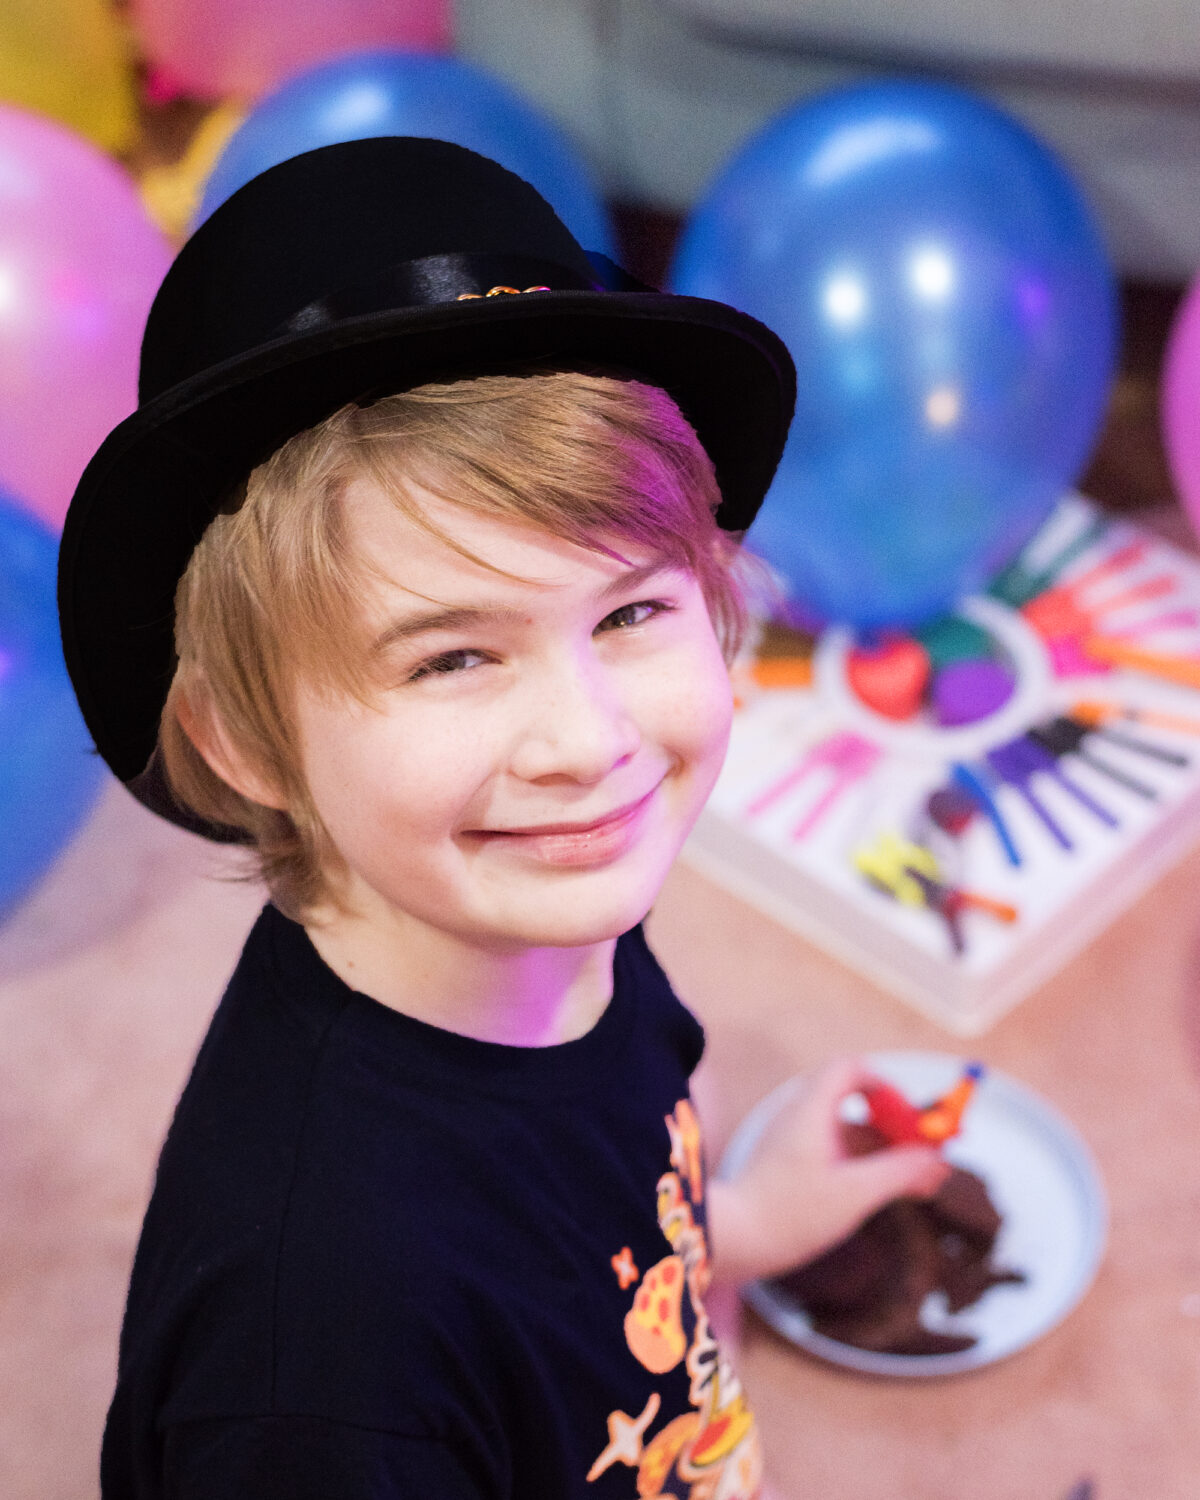 Image shows a happy boy smiling at the camera with a black top hat on. image by keep up with the jones family.